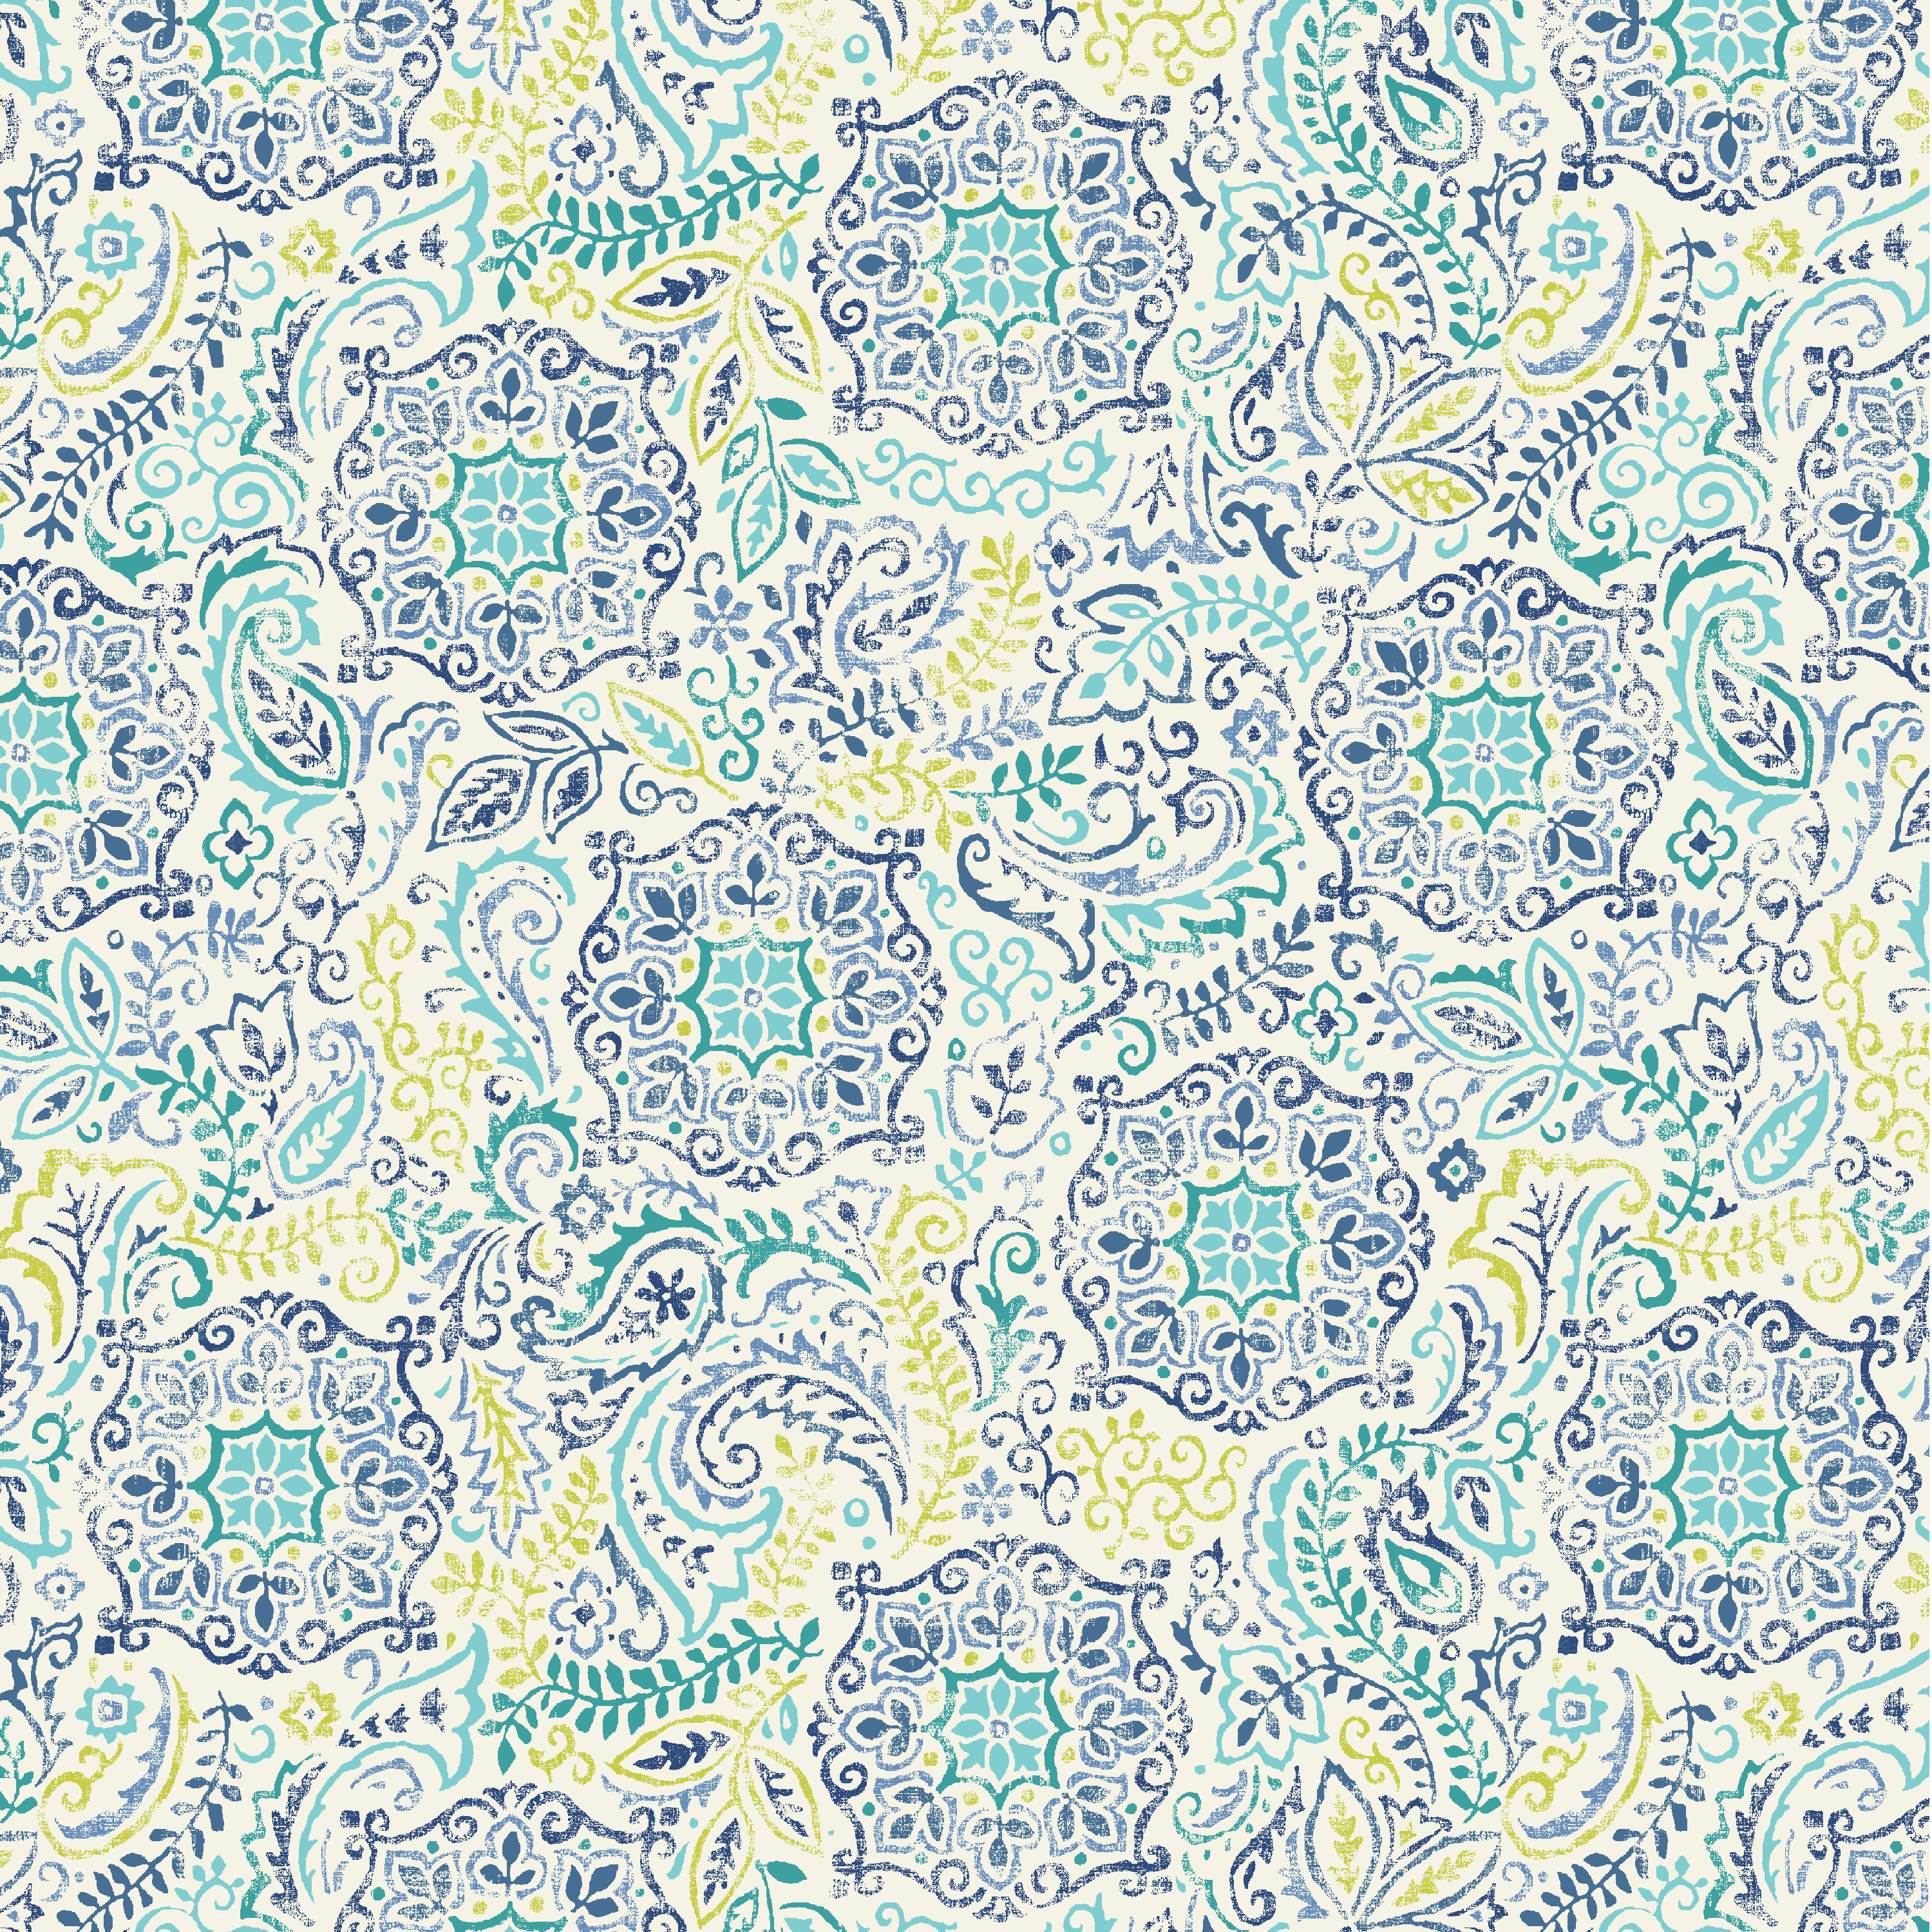 Waverly Inspirations POP FLOWER AZURE 100% Cotton Duck Fabric 45'' Wide, 180 Gsm, Quilt Crafts Cut By The Yard